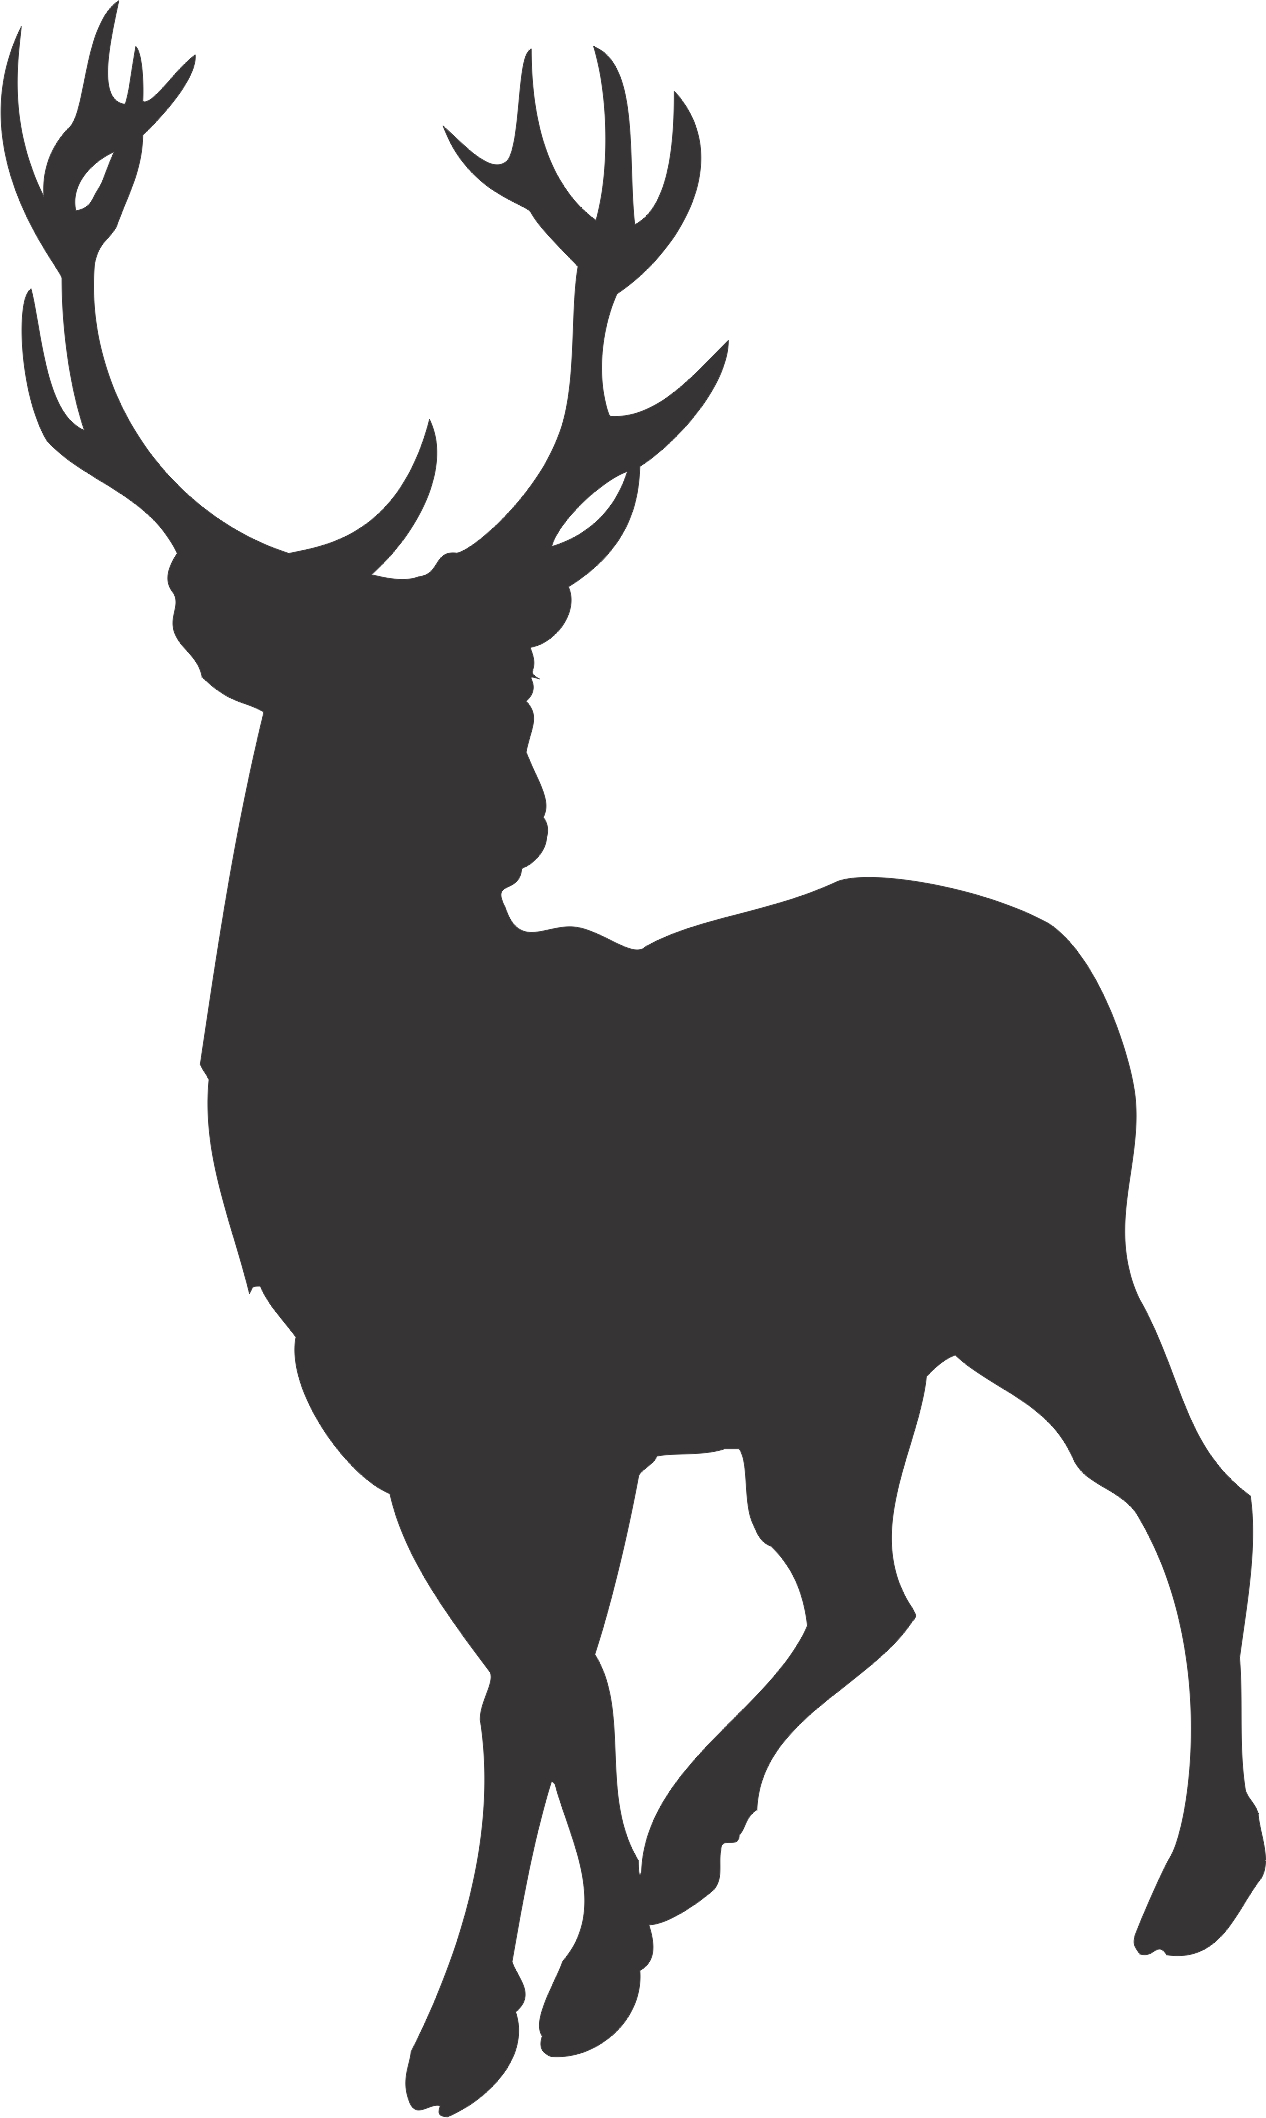 19 Stag Head Silhouette Vector Free Cliparts That You Can Download To